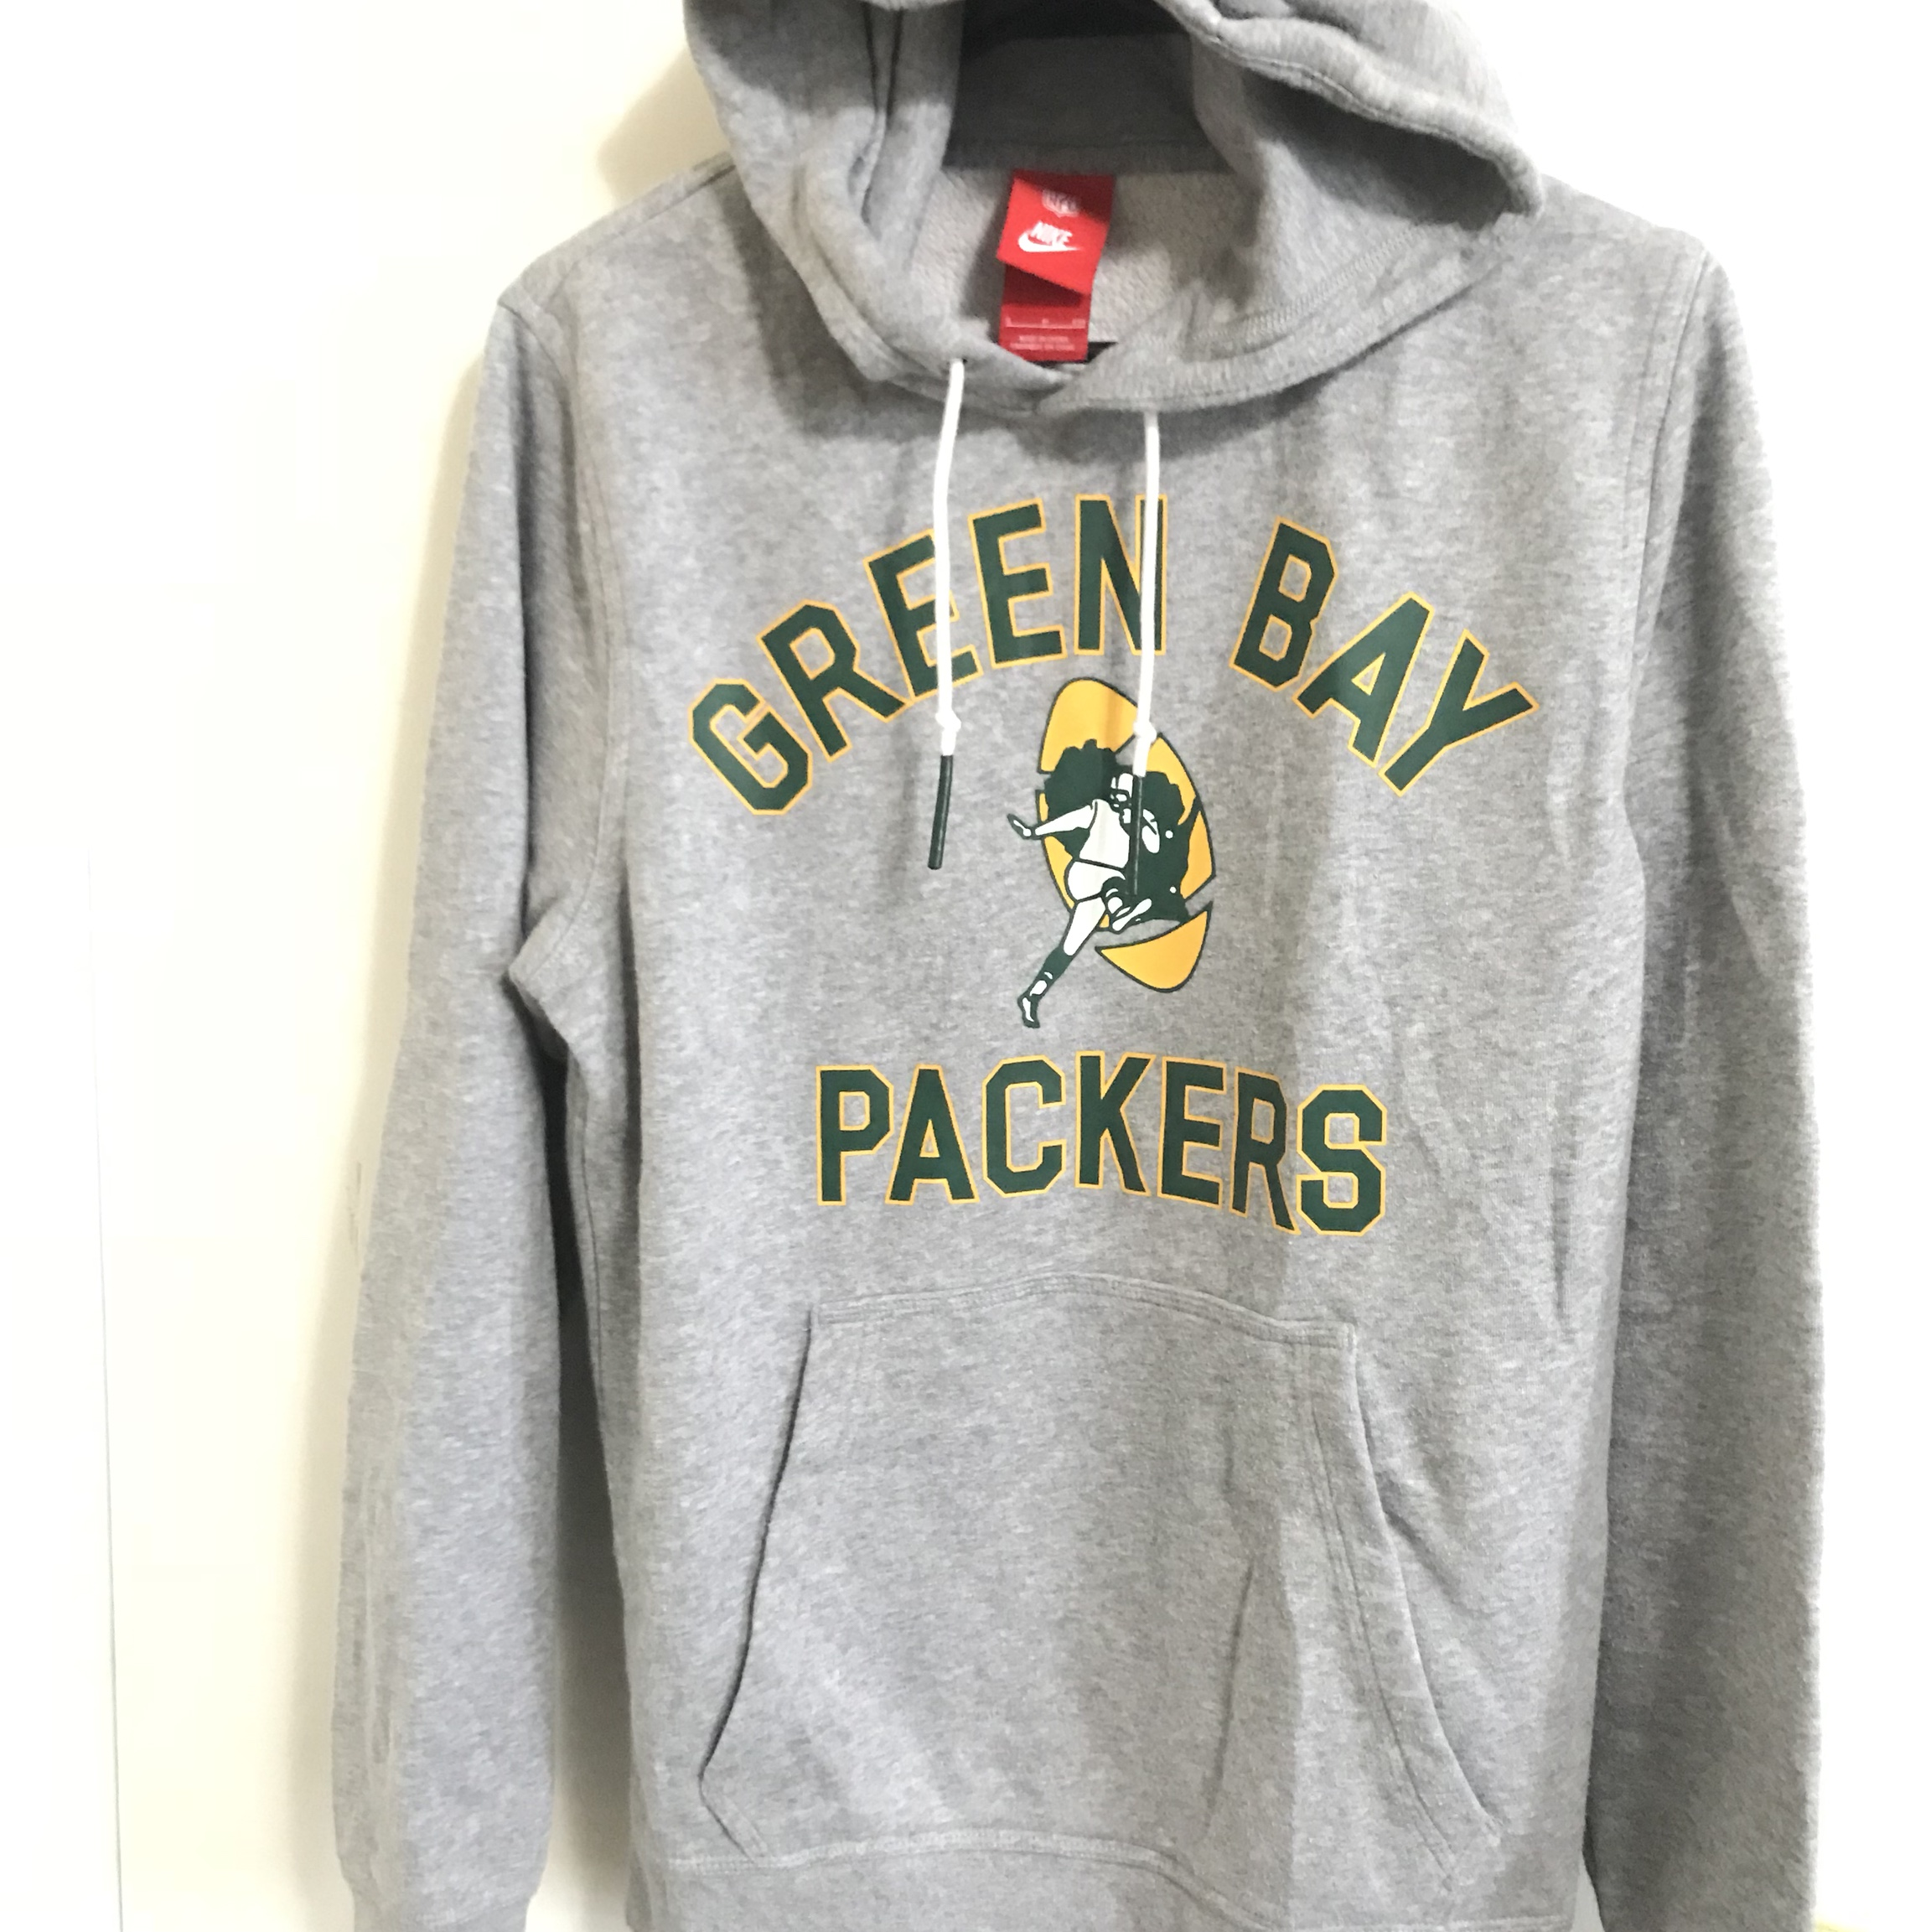 new style febc3 bae85 Vintage Nike green bay packers hoodie size Small - Depop